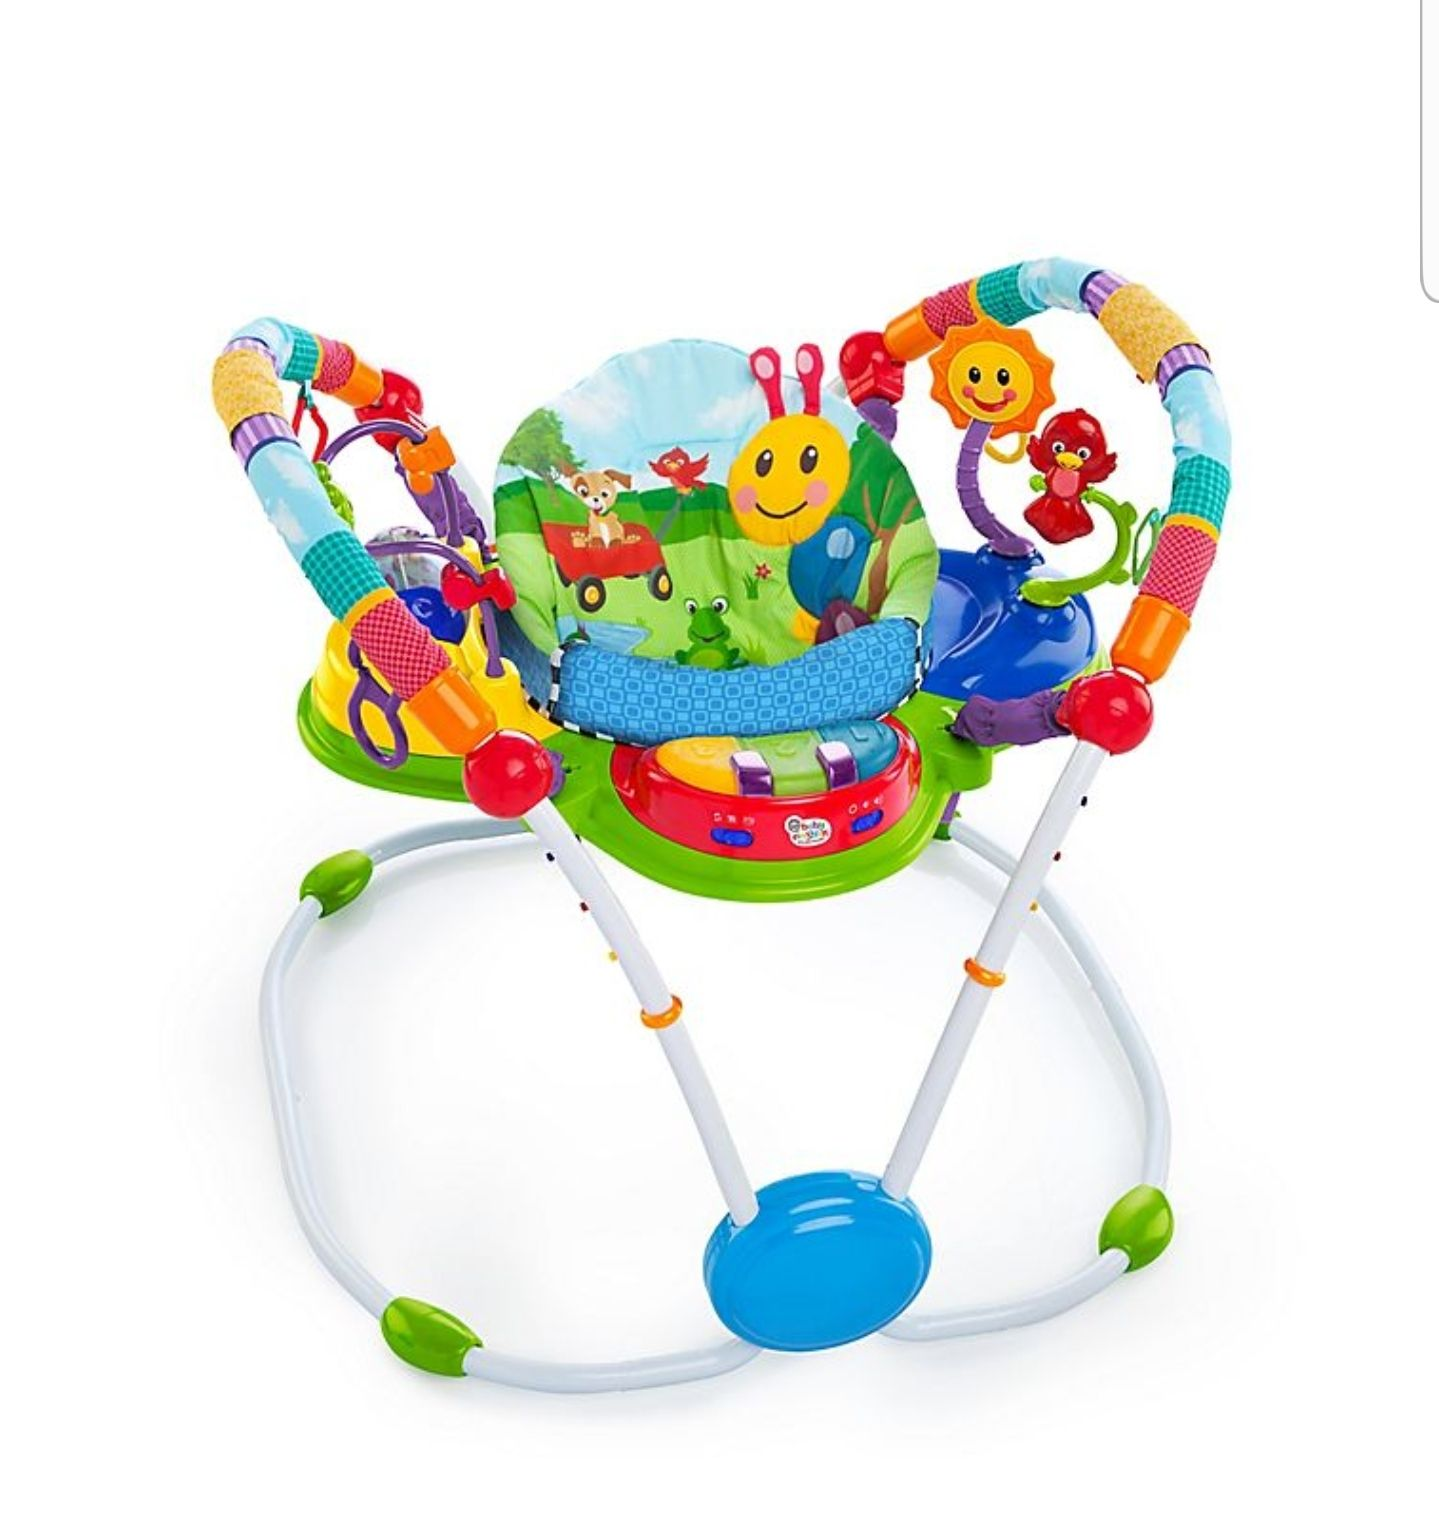 Infant Toys, Jumperoo, misc baby stuff